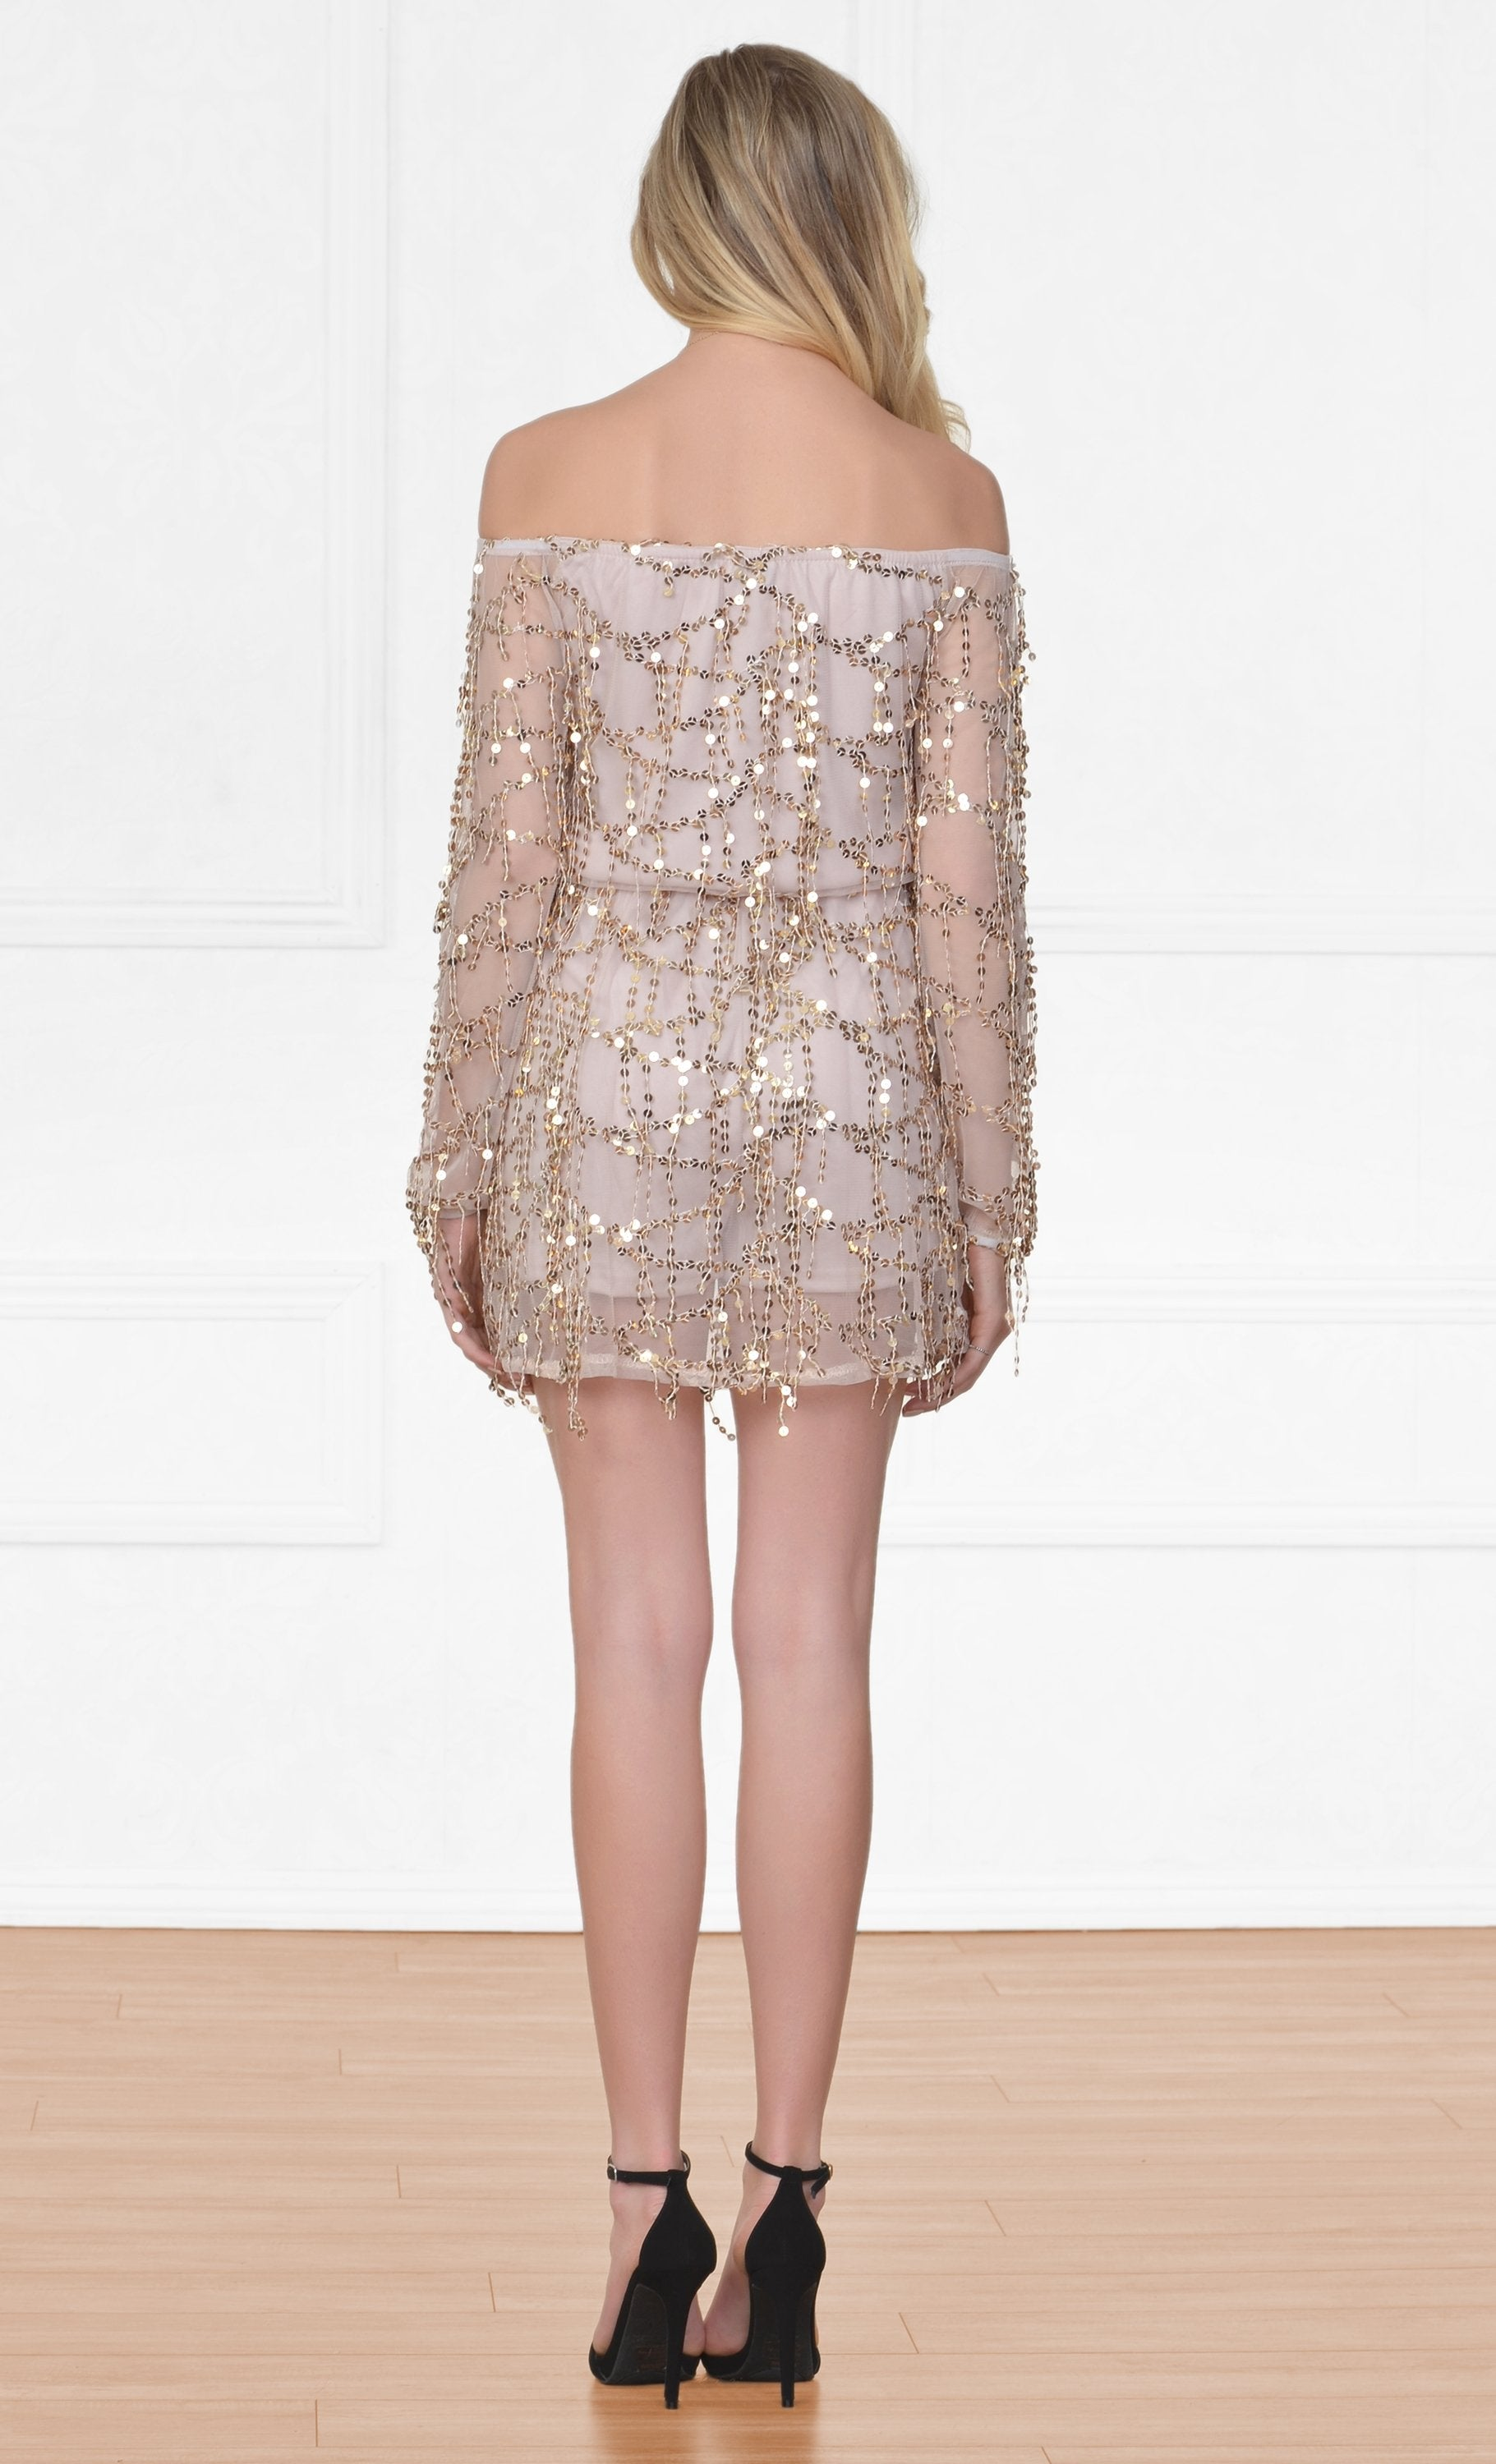 Indie XO Heavenly Flirt Beige Gold Sequin 3/4 Sleeve Off The Shoulder Elastic Waist Mini Dress